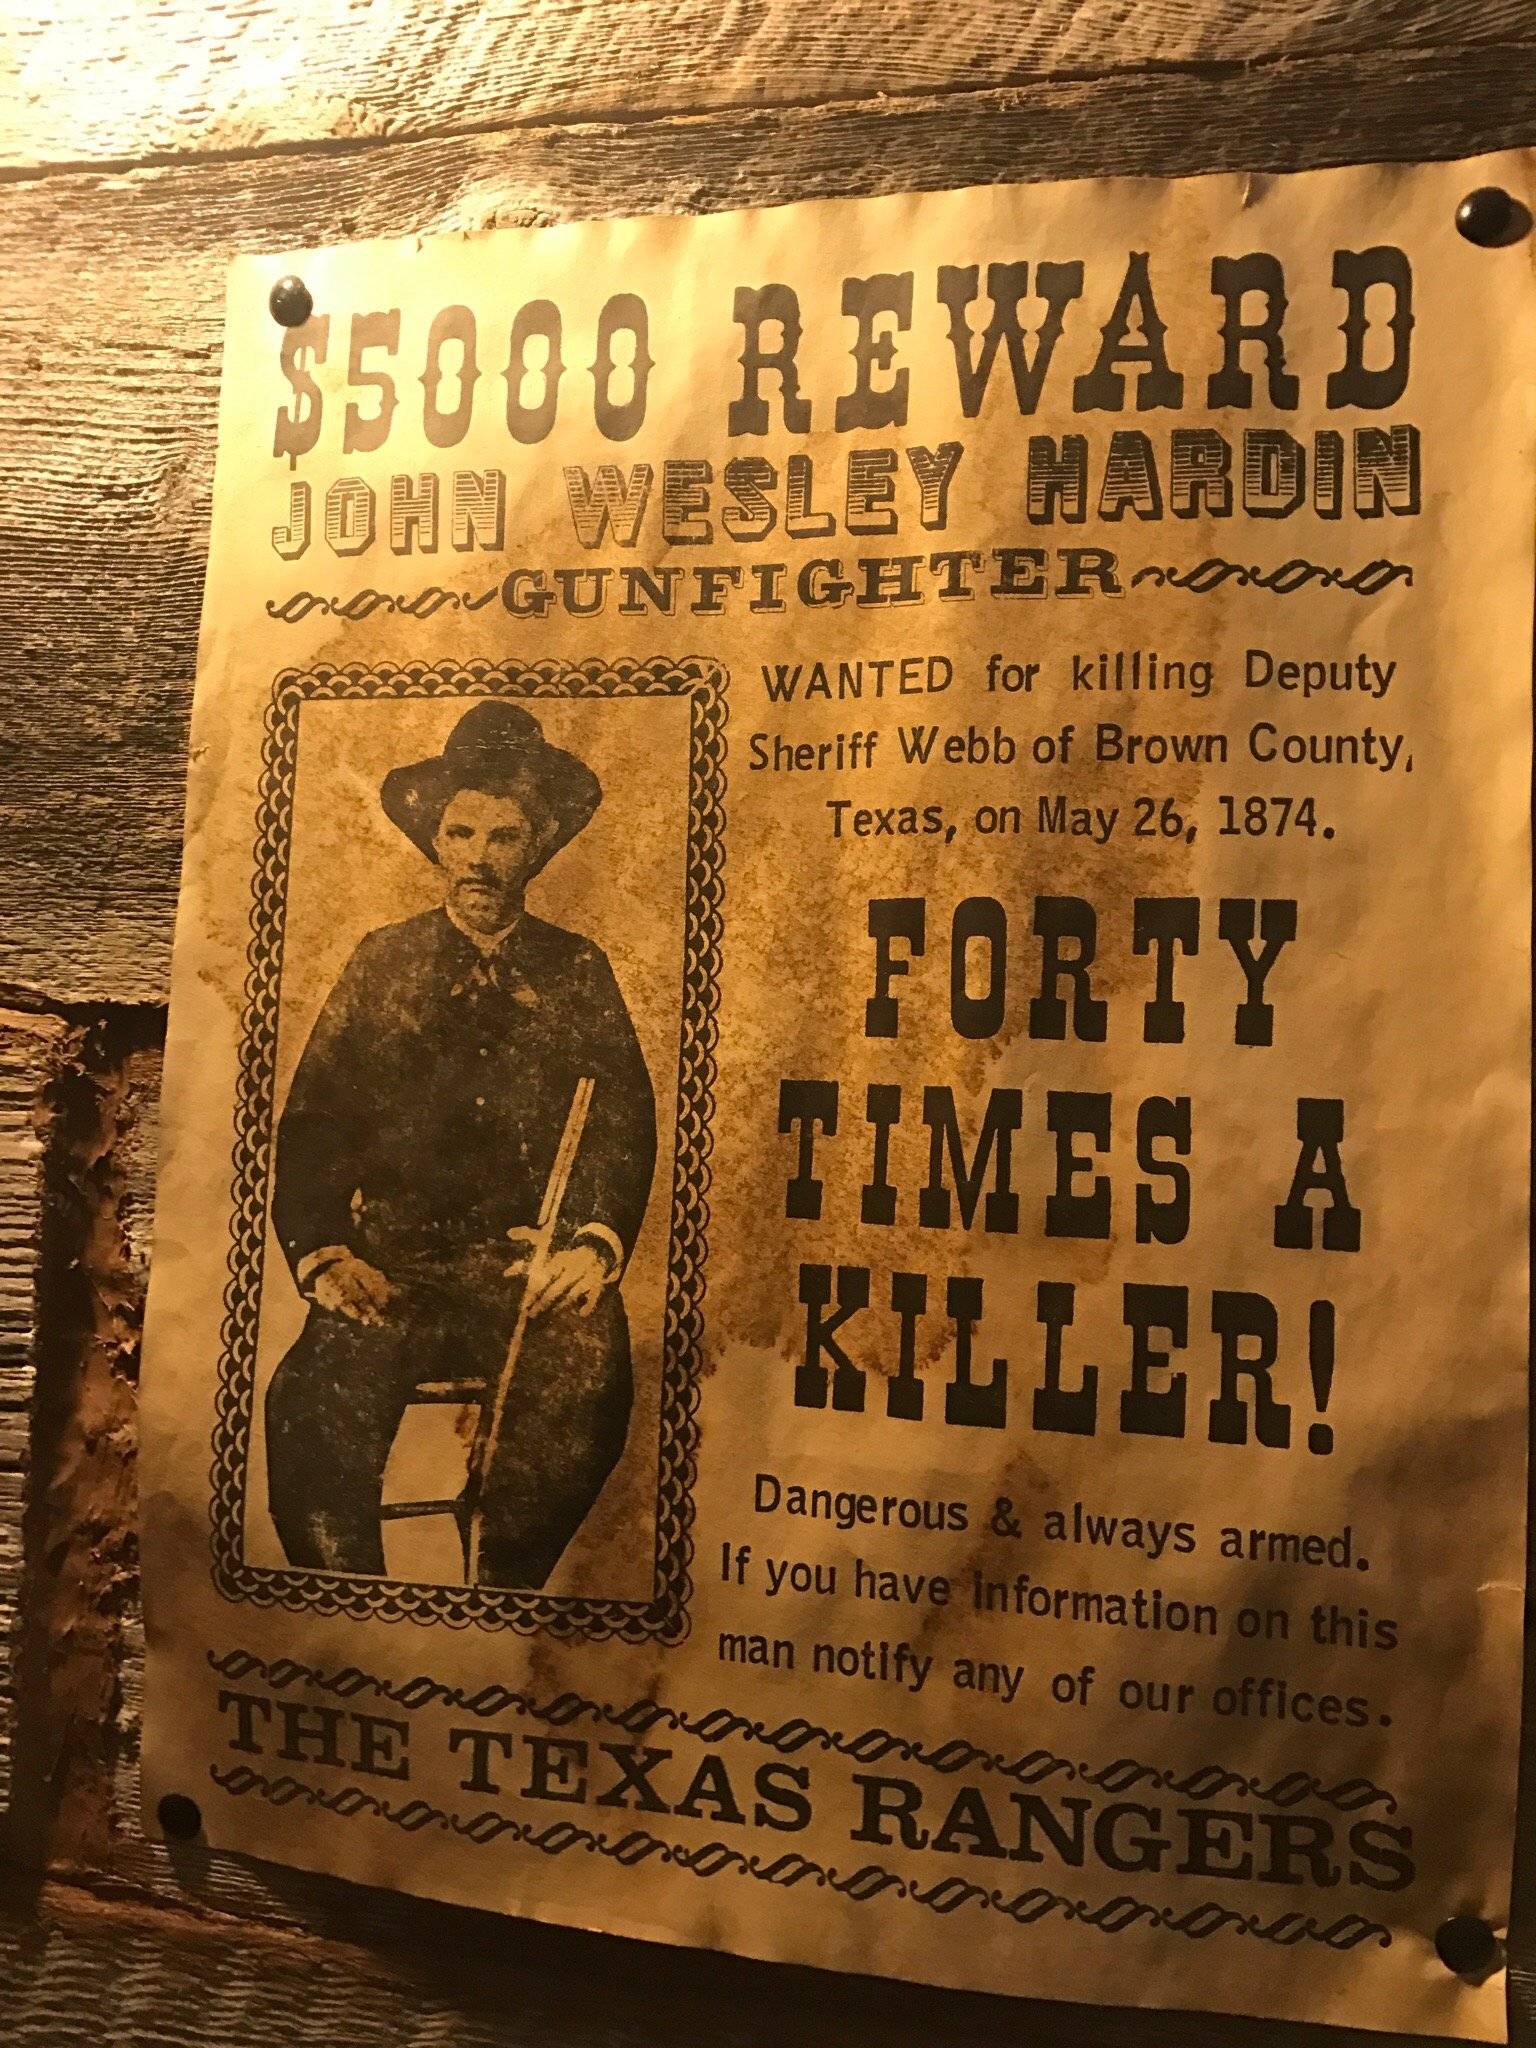 Lunch was great - cowboy stew and a grill cheese sandwich. I like the old west decor, including